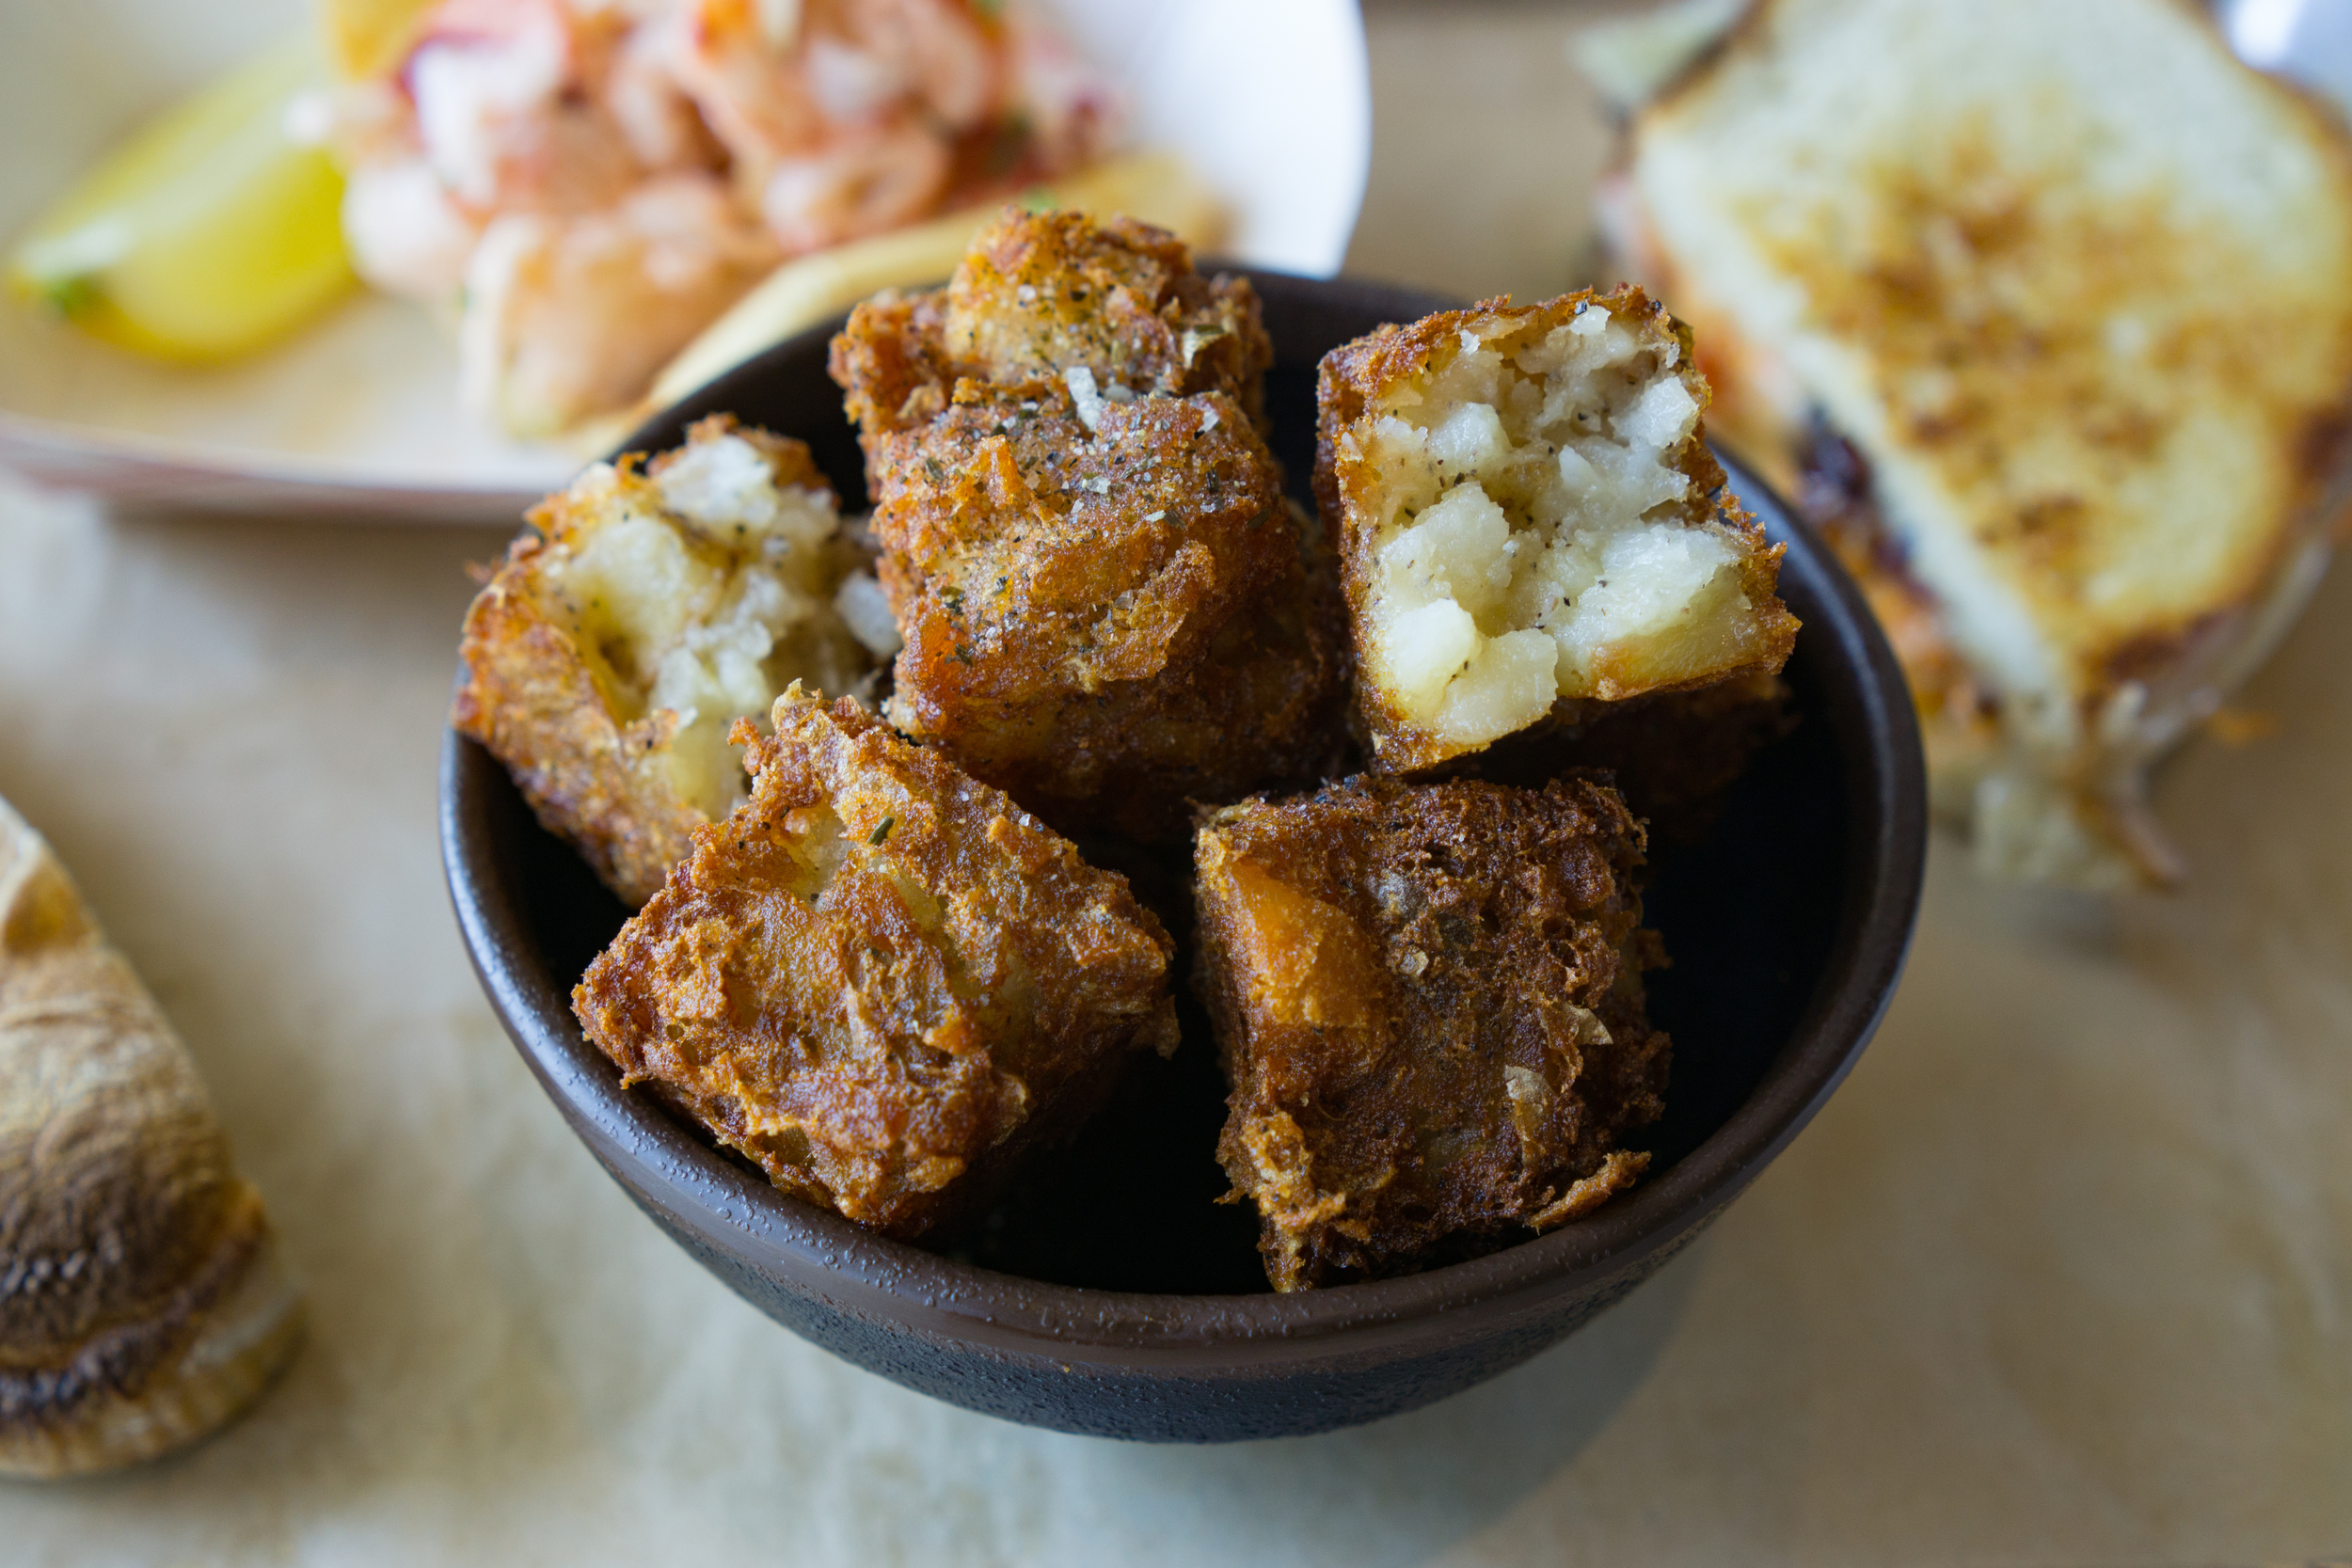 Homemade tater tots from Boothbay Lobster Company